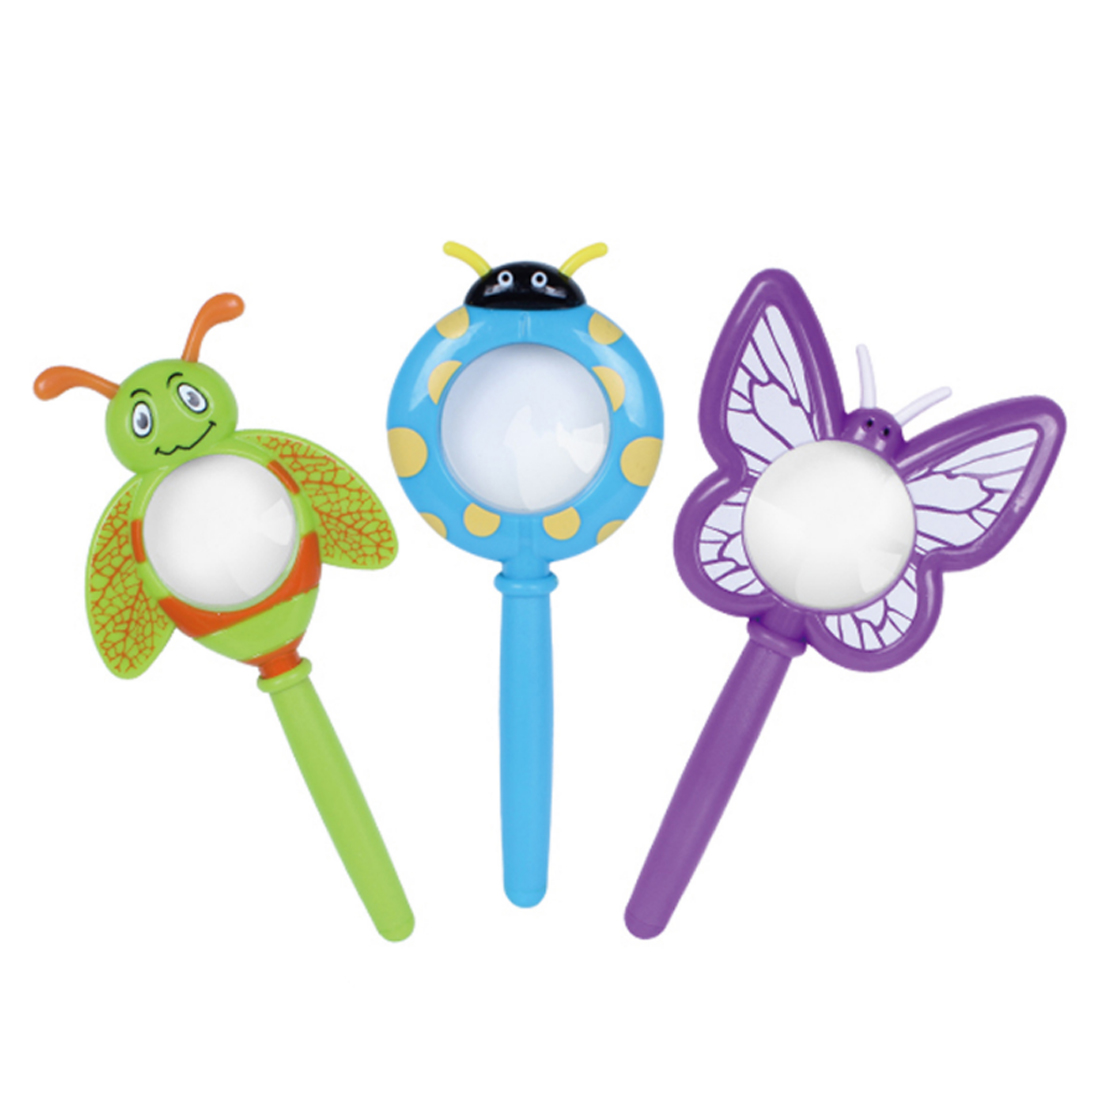 1pcs Children Butterfly and Insect Magnifying Glass with Bug Viewer Children Handheld Lens Toy Butterfly Shape - Color Random1pcs Children Butterfly and Insect Magnifying Glass with Bug Viewer Children Handheld Lens Toy Butterfly Shape - Color Random